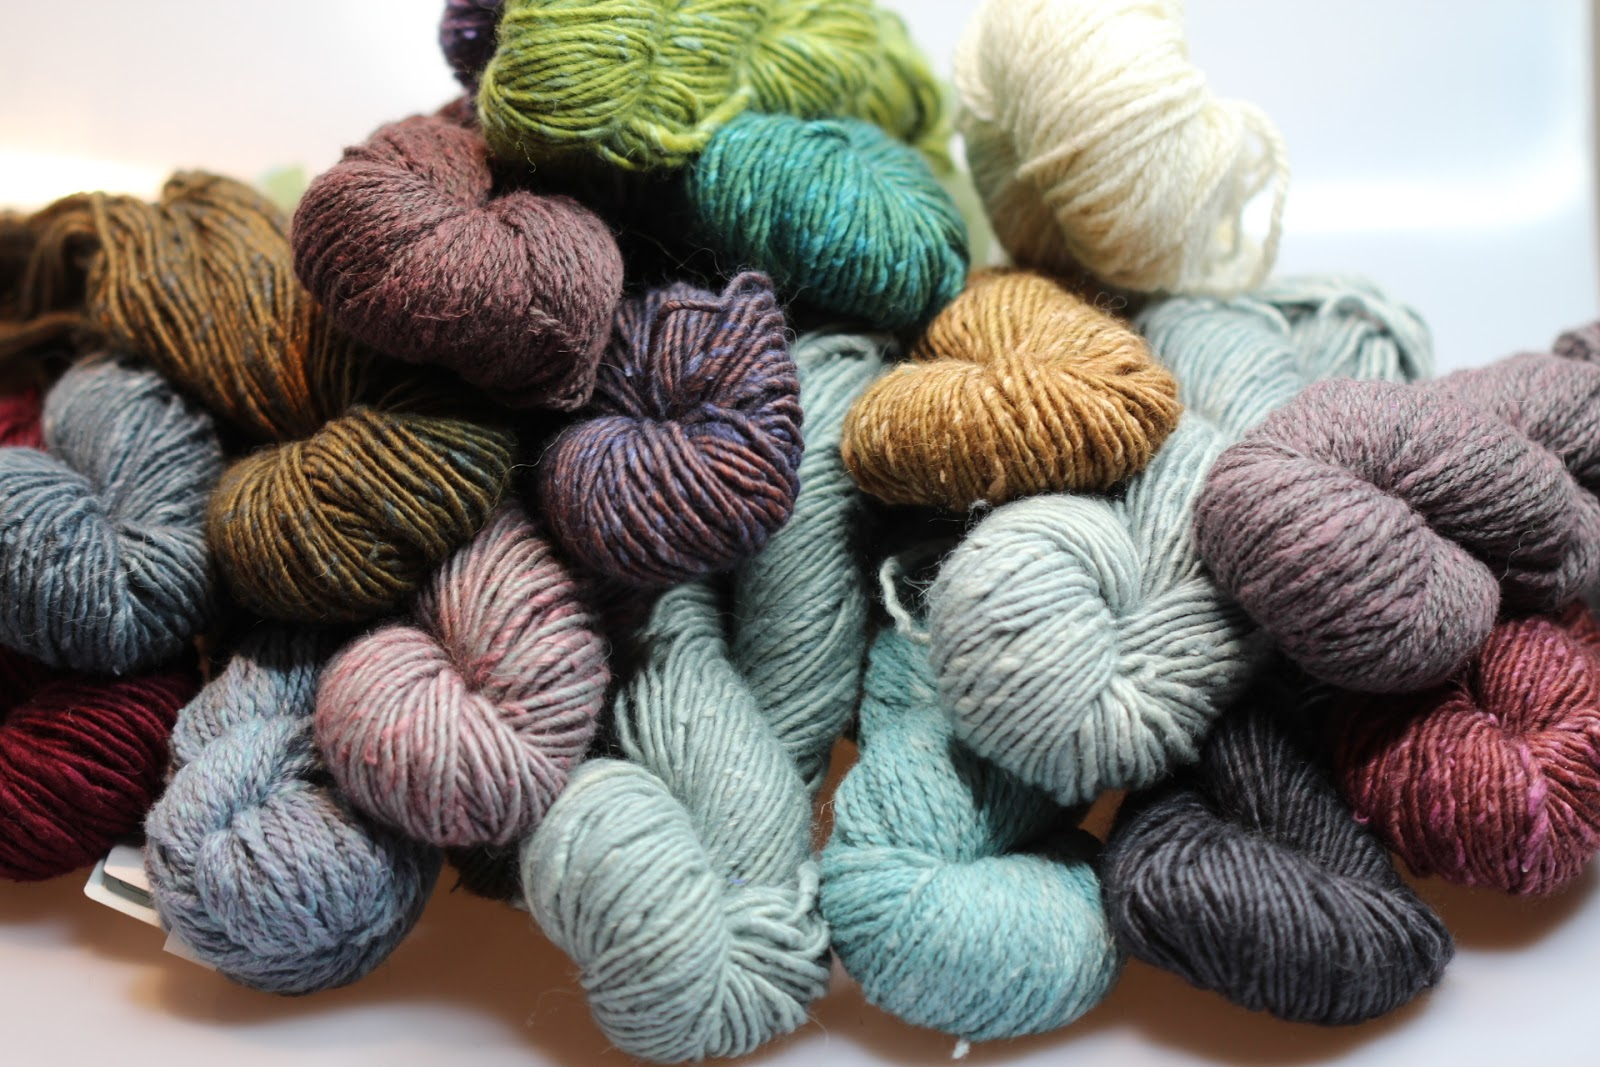 Nov 15, · From now until December 31st, , YOU can receive $5 back on any purchases of Interweave products (magazines & books published by Interweave) made at Tempe Yarn & tvjerjuyxbdmp.gaeave products (magazines & books published by Interweave) made at Tempe Yarn & Fiber.